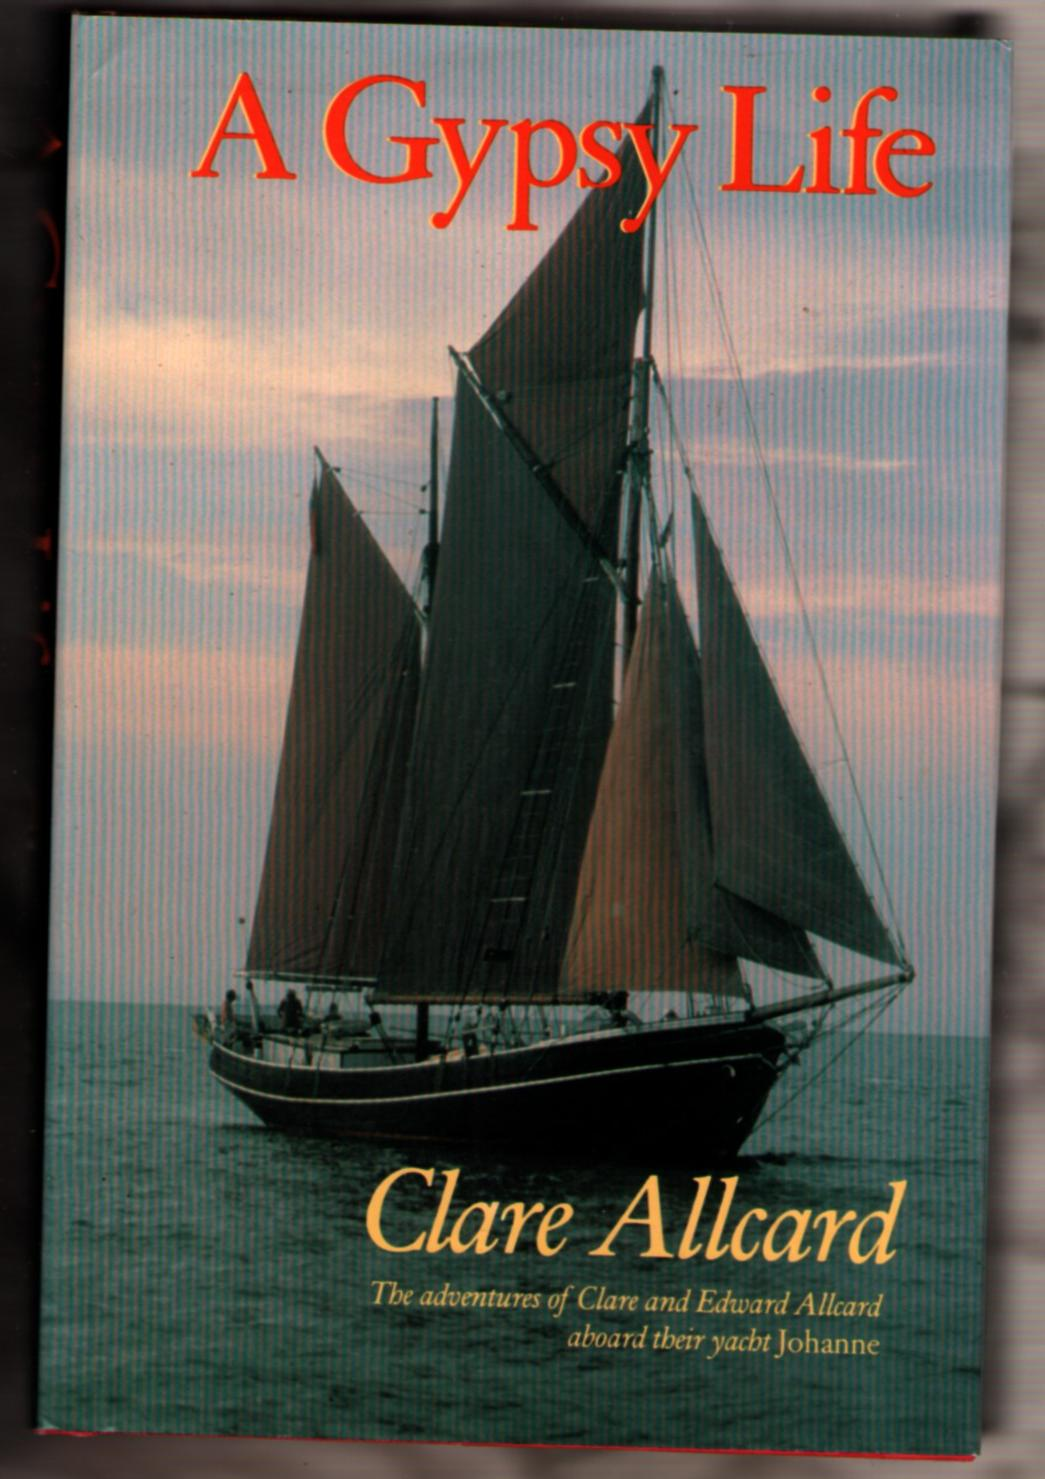 Image for A Gypsy Life: The Adventures of Clare and Edward Allcard aboard their yacht Johanne